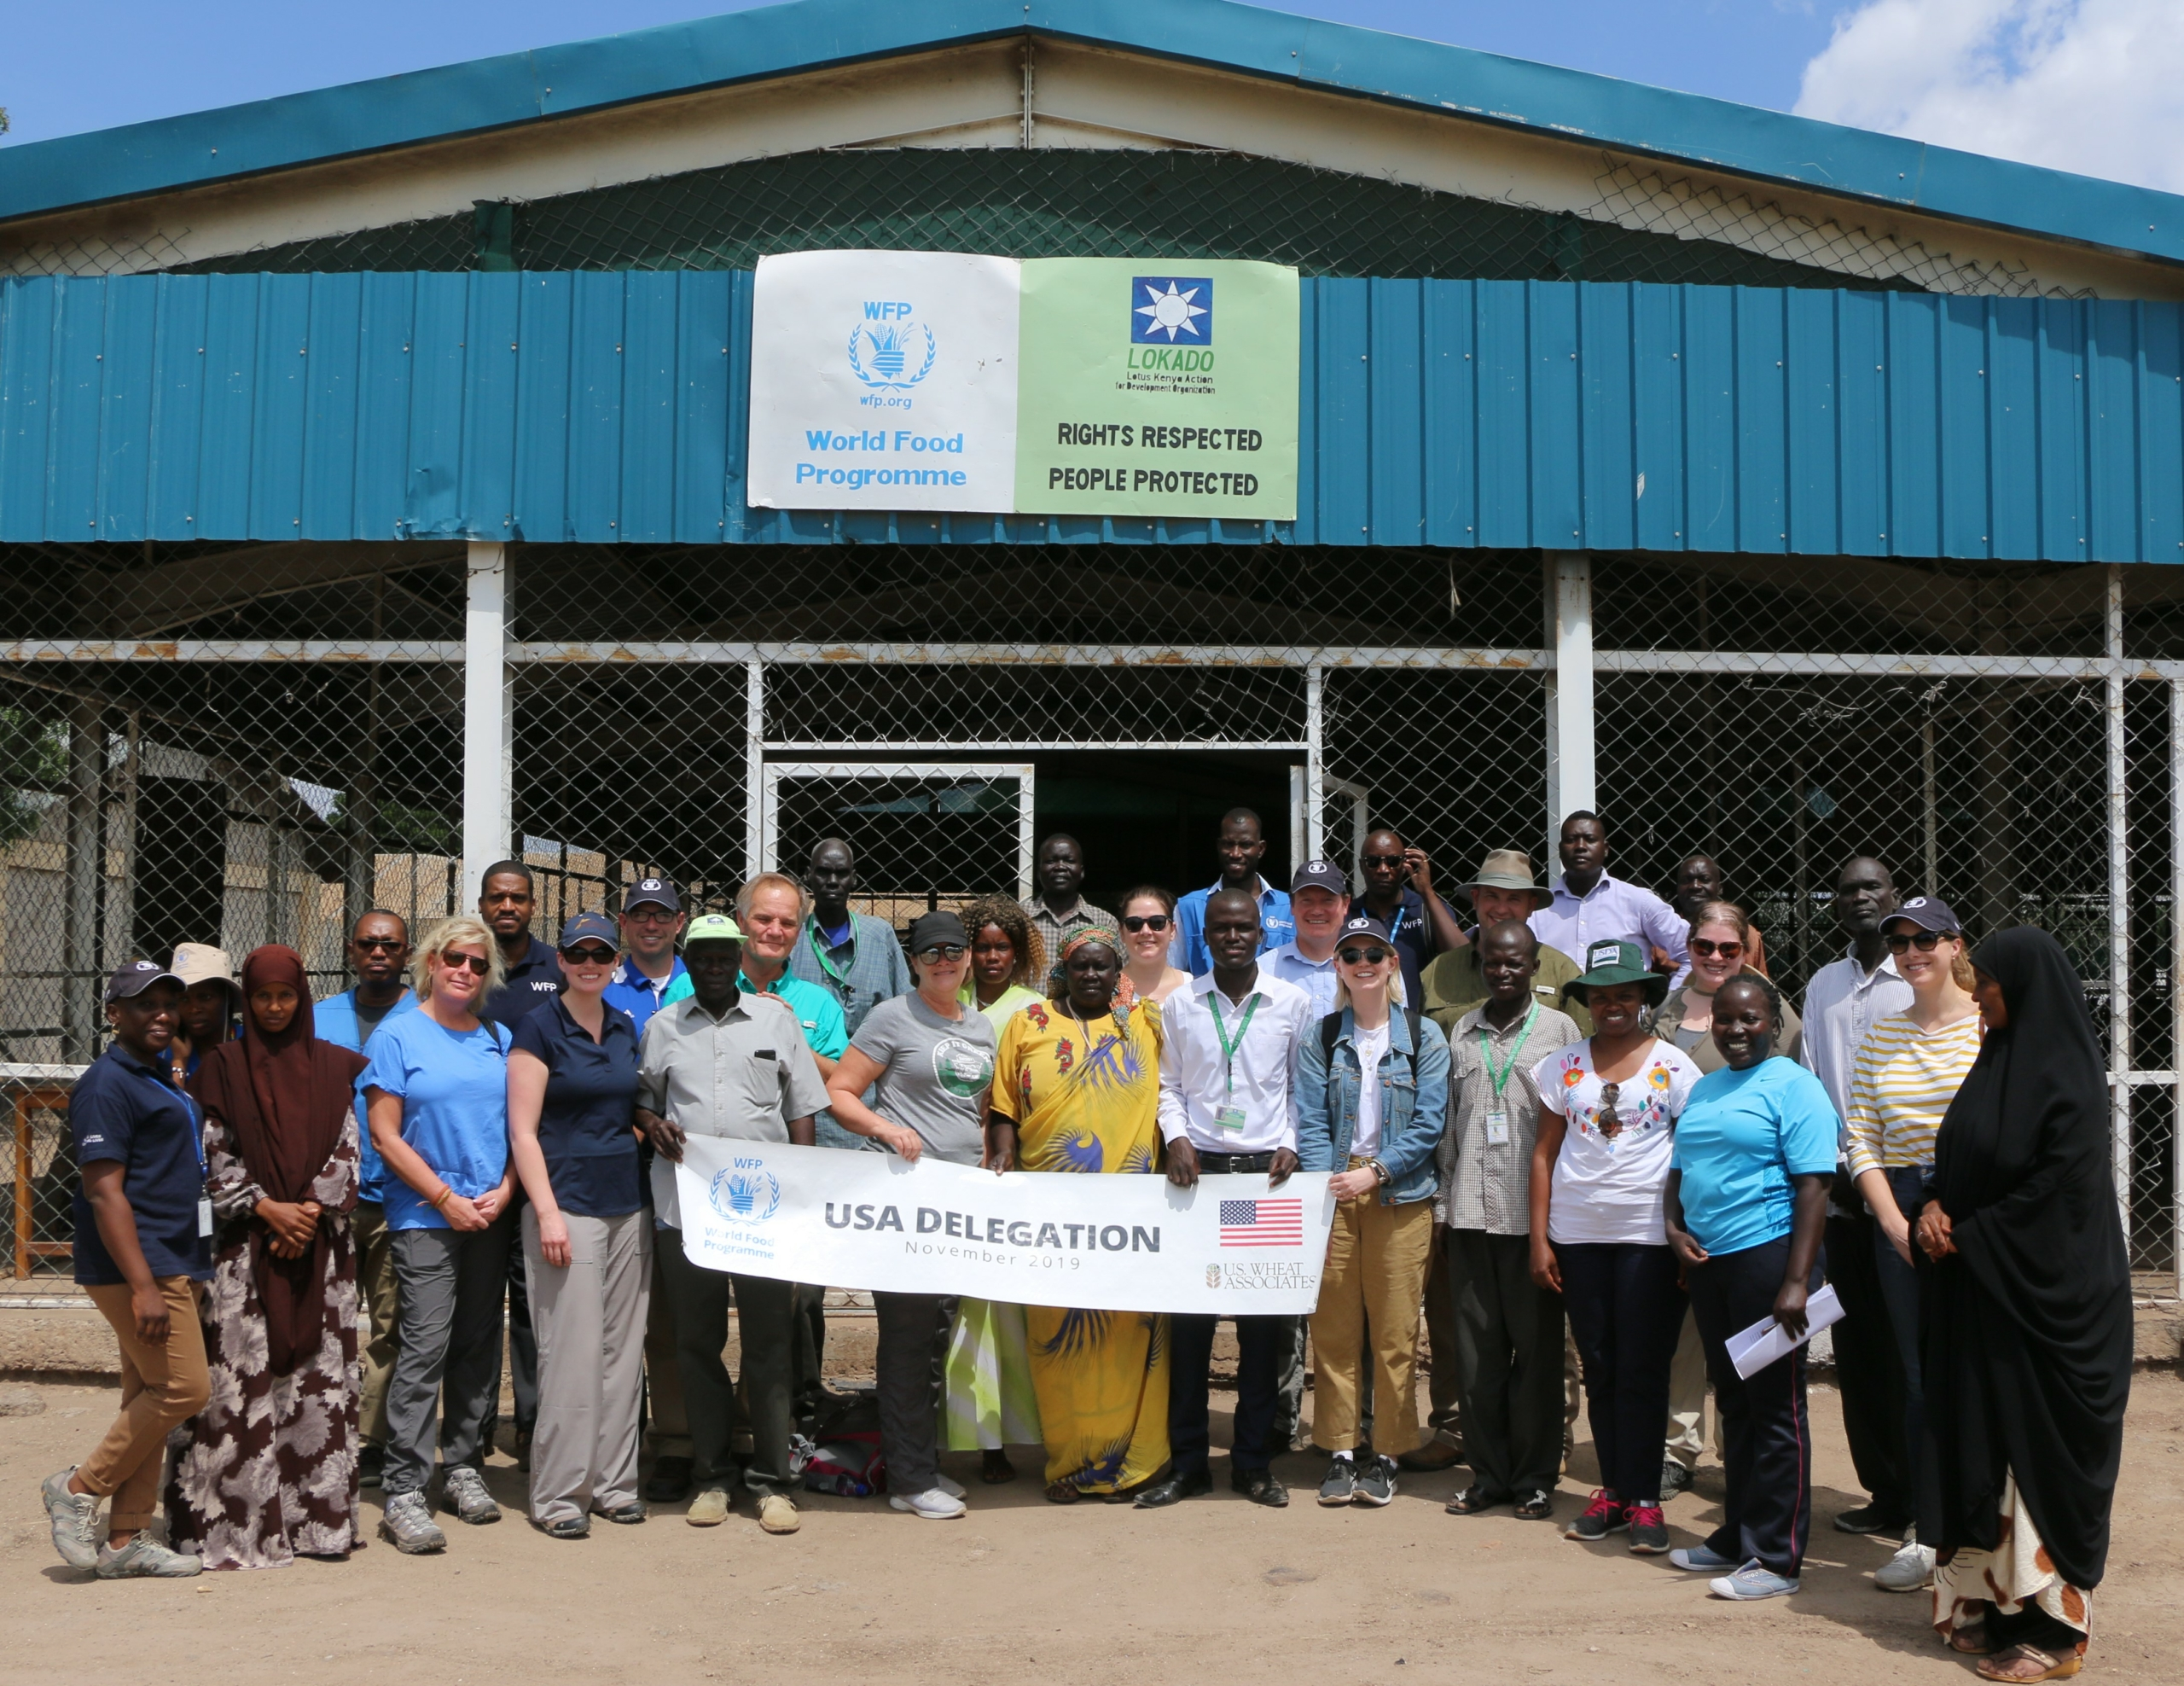 U.S. farmers traveled to East Africa to learn about global food security and food aid programs.